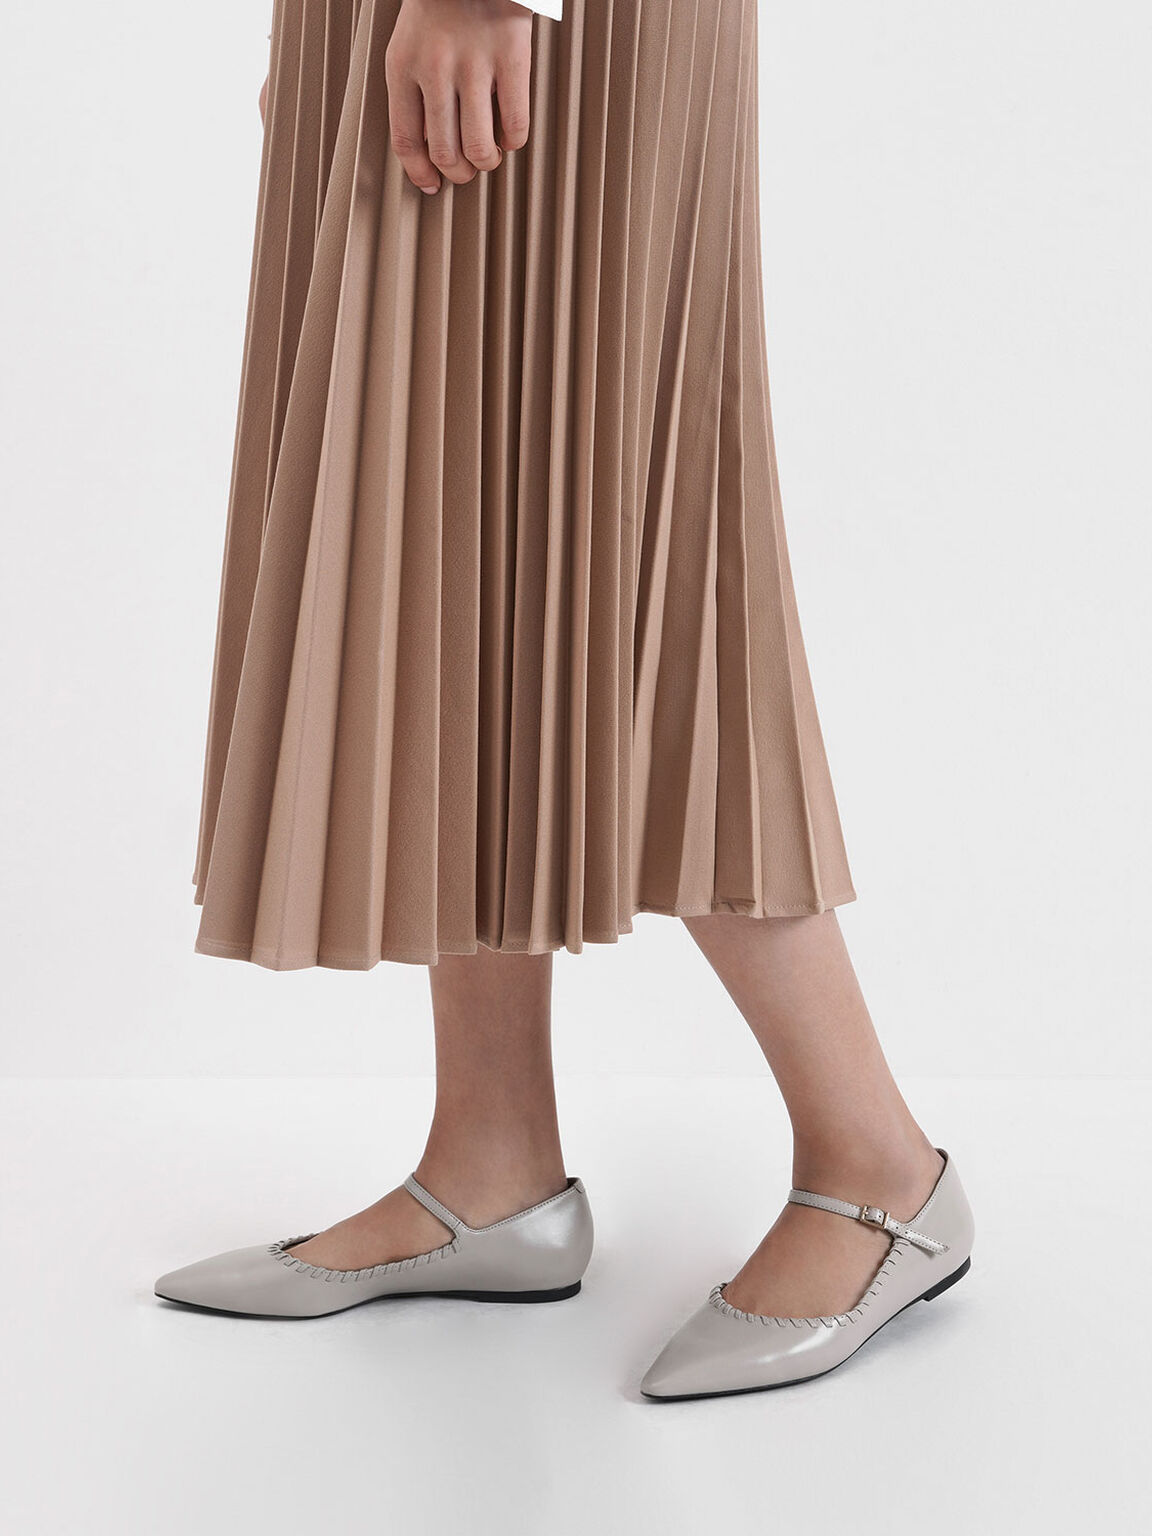 Whipstitch Trim Mary Jane Flats, Nude, hi-res